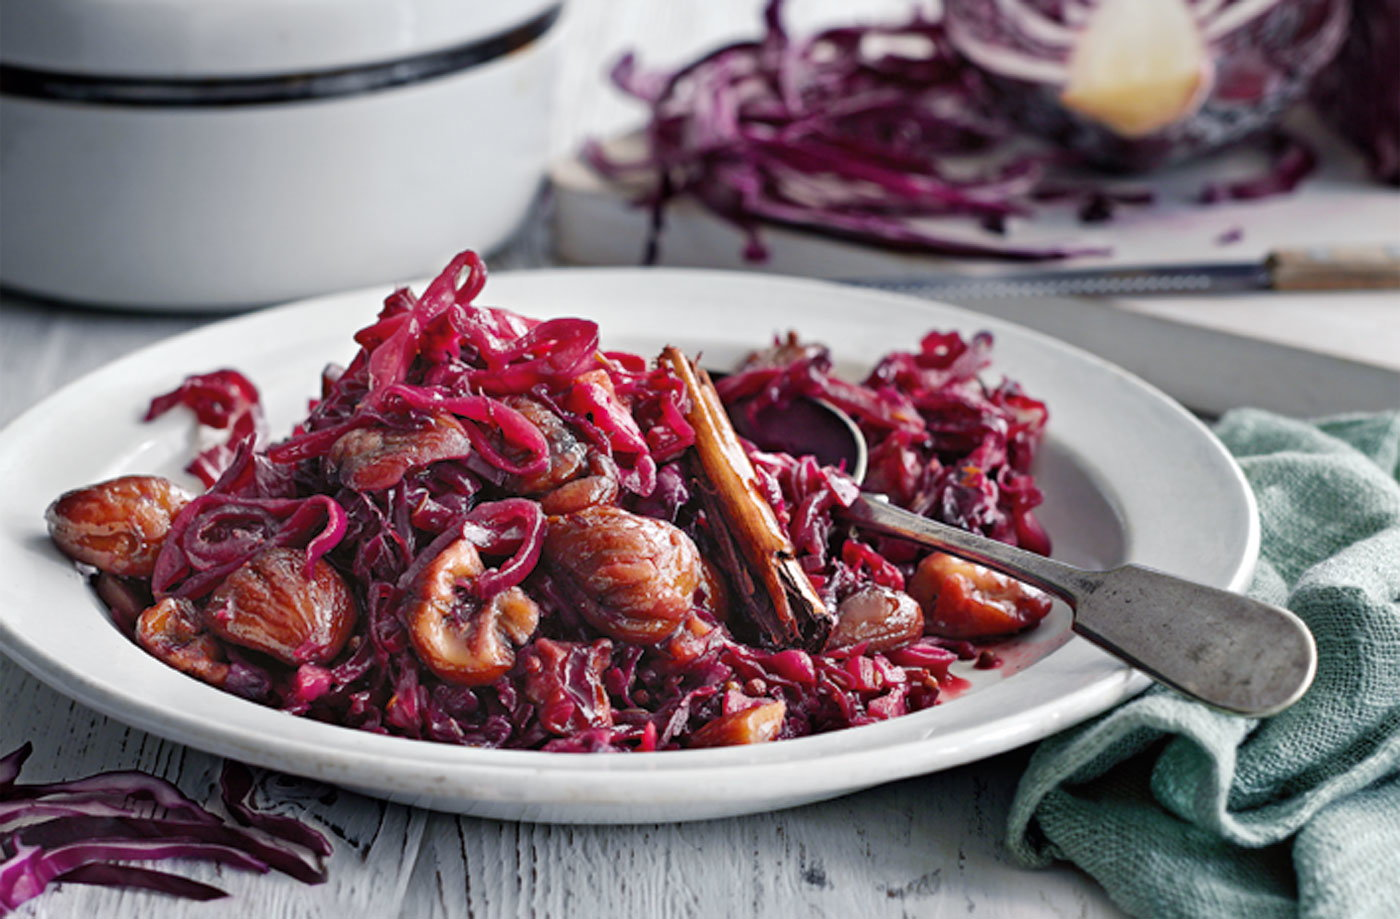 Spiced braised red cabbage with red wine vinegar and chestnuts recipe